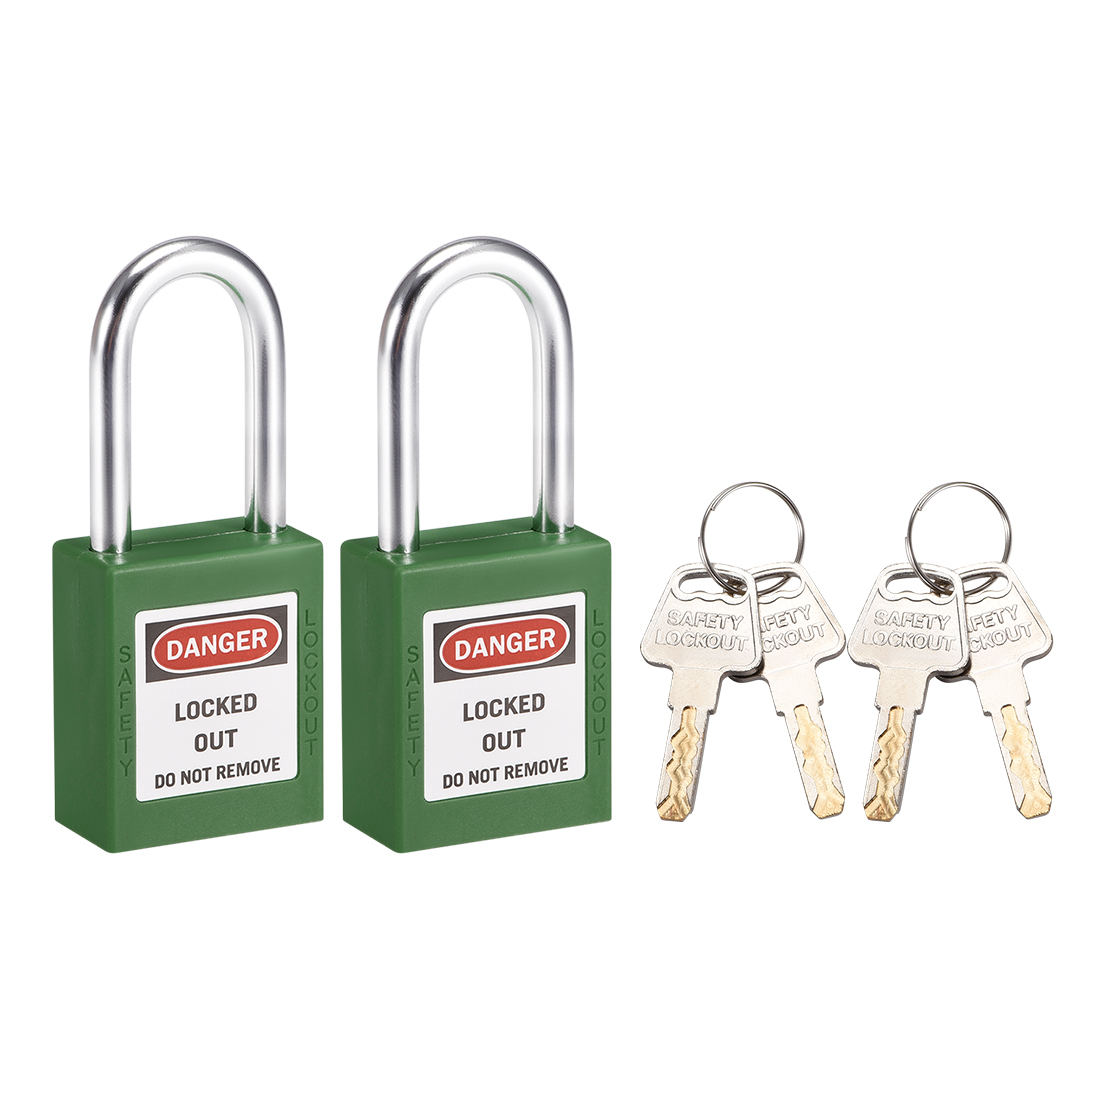 Lockout Tagout Locks 1-1/2 Inch Shackle Key Different Safety Padlock Green 2pcs